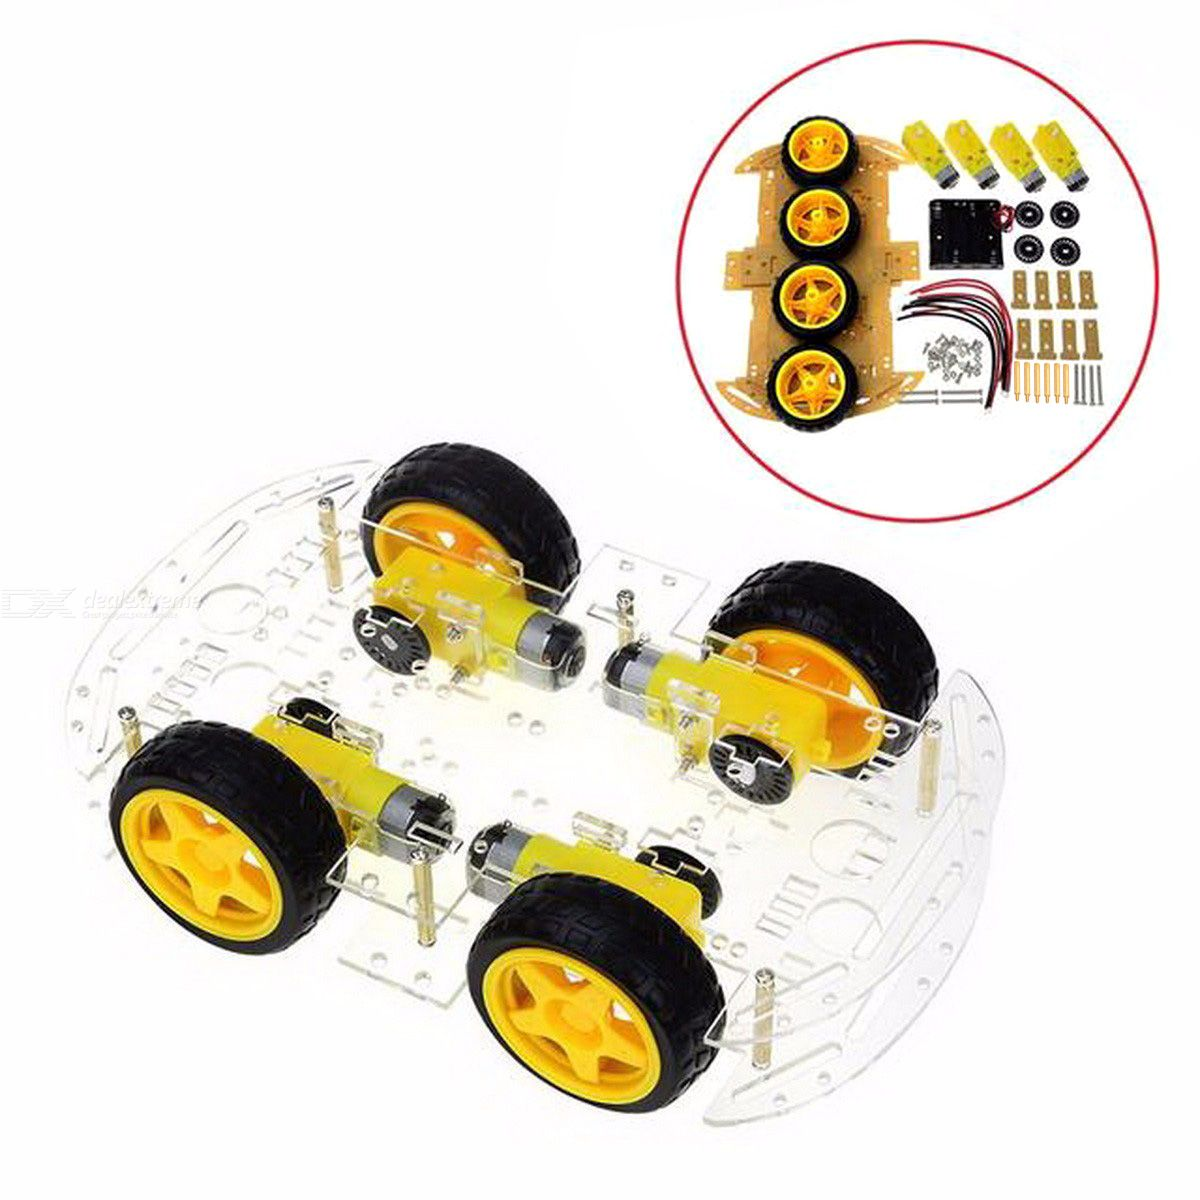 Integrated Circuits Smart Motor Fixed Frame For Arduino Motor Smart Robot Car Chassis Kit Speed Encoder Battery Box 2wd 4wd At All Costs